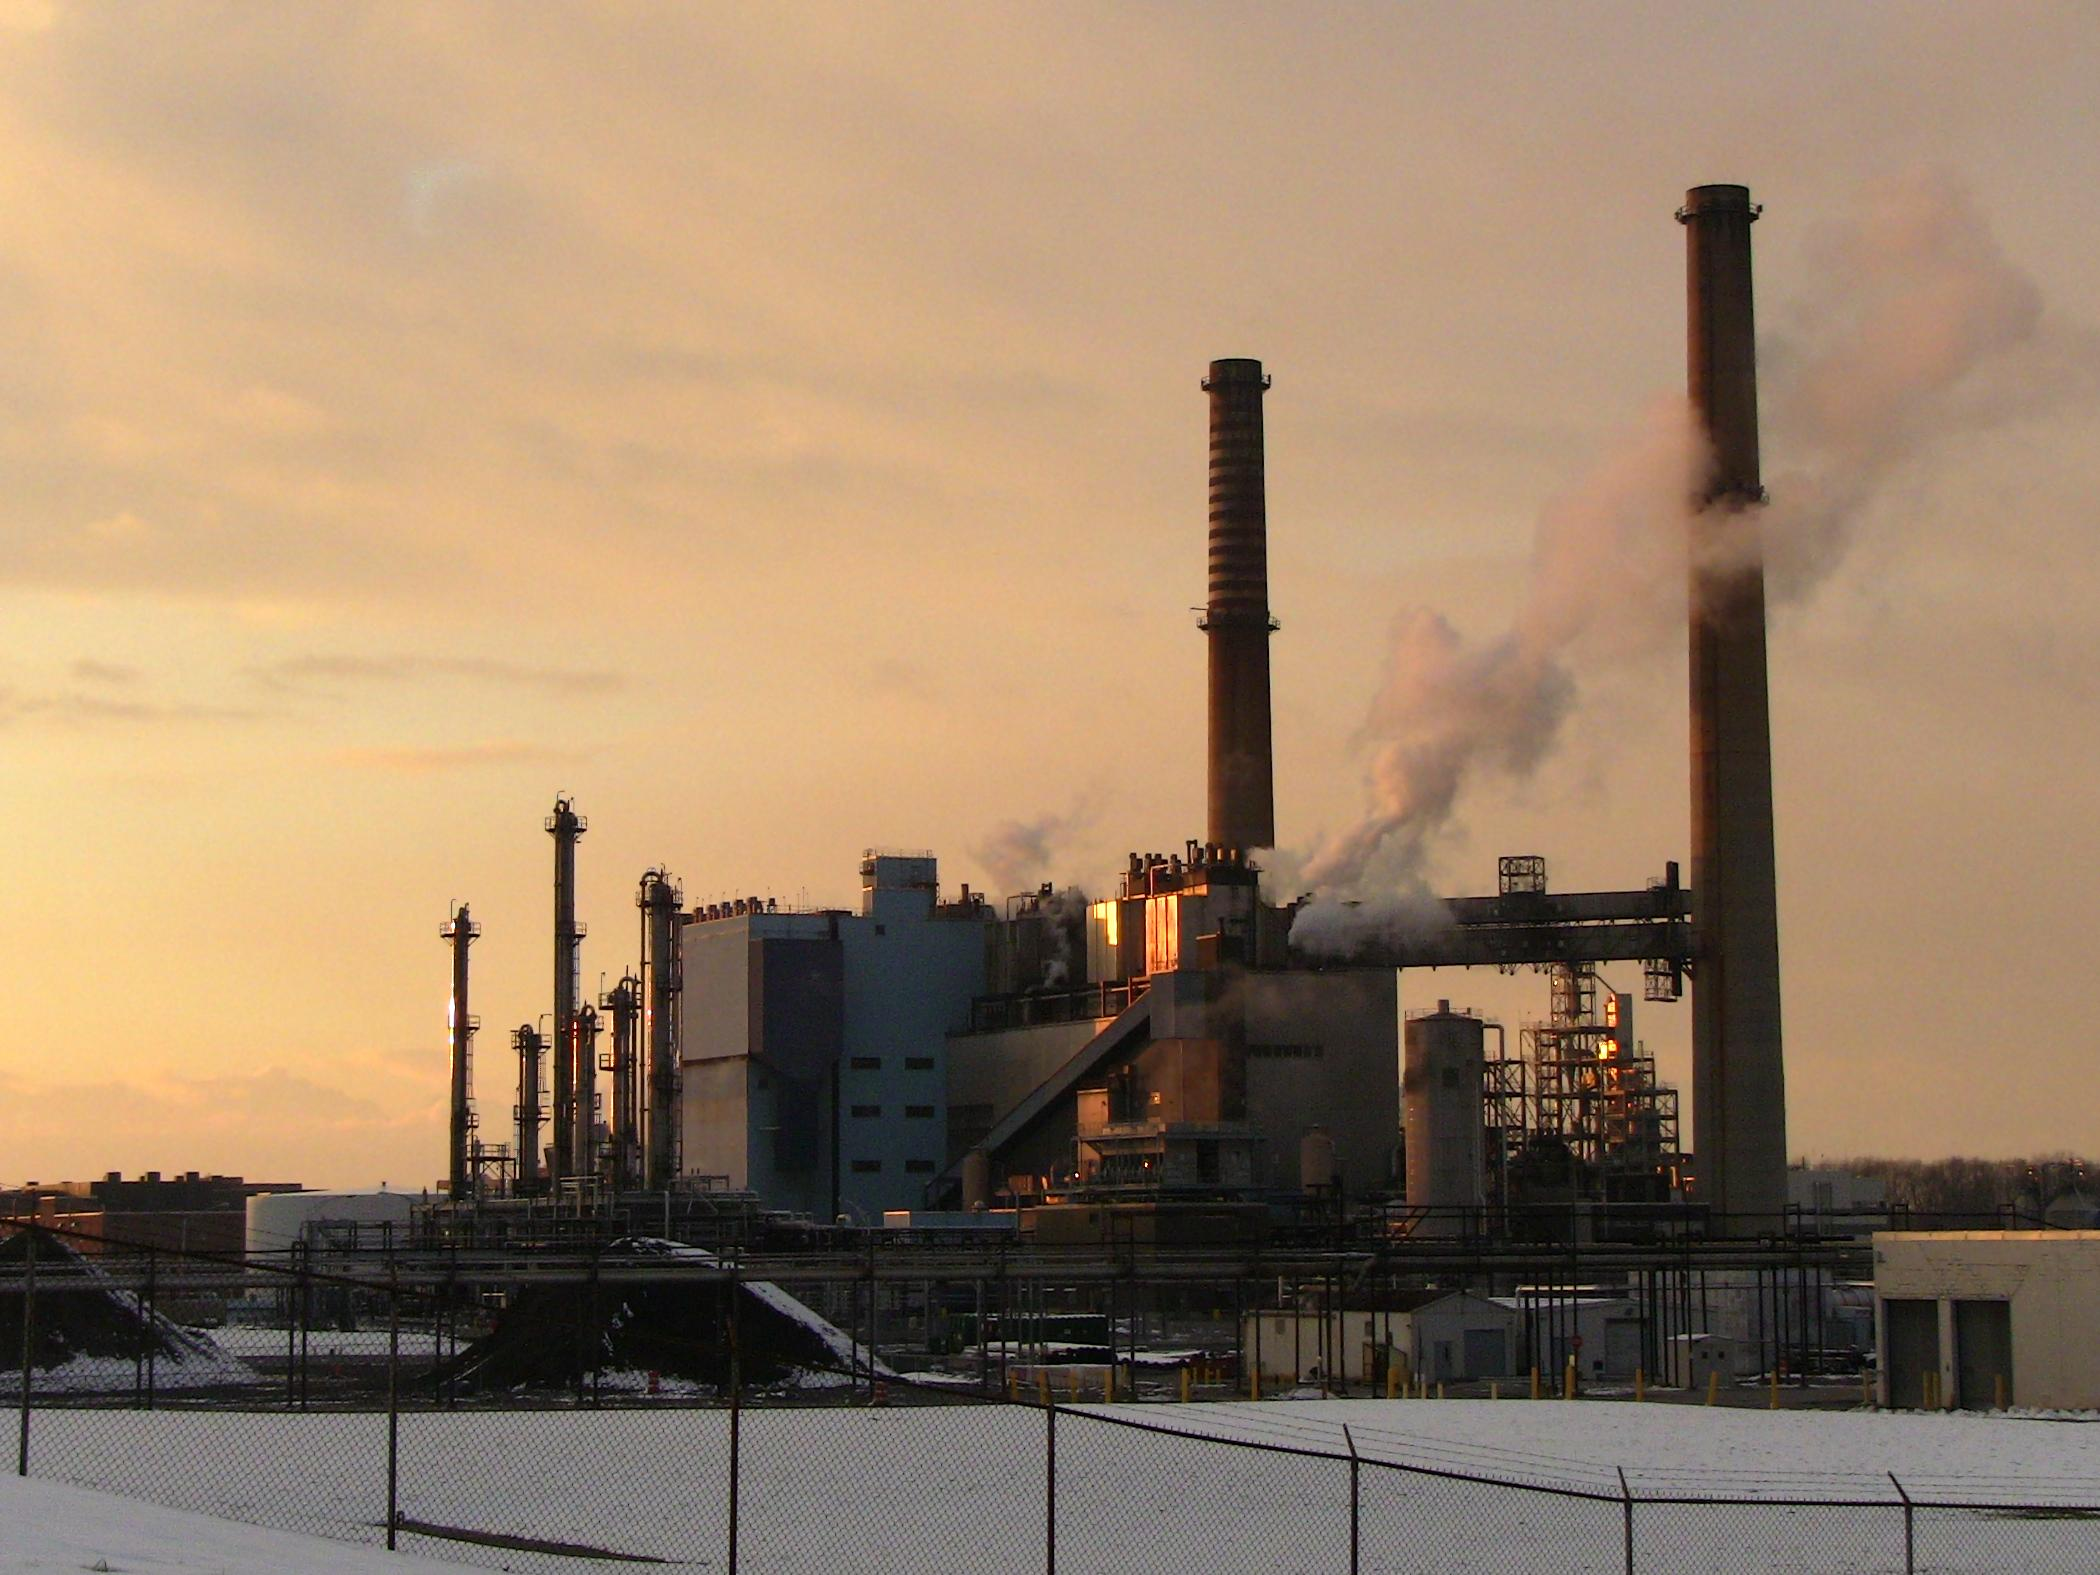 Fired Up Part 2 >> Ask a trail guide: How much coal does Kodak burn? | Innovation Trail